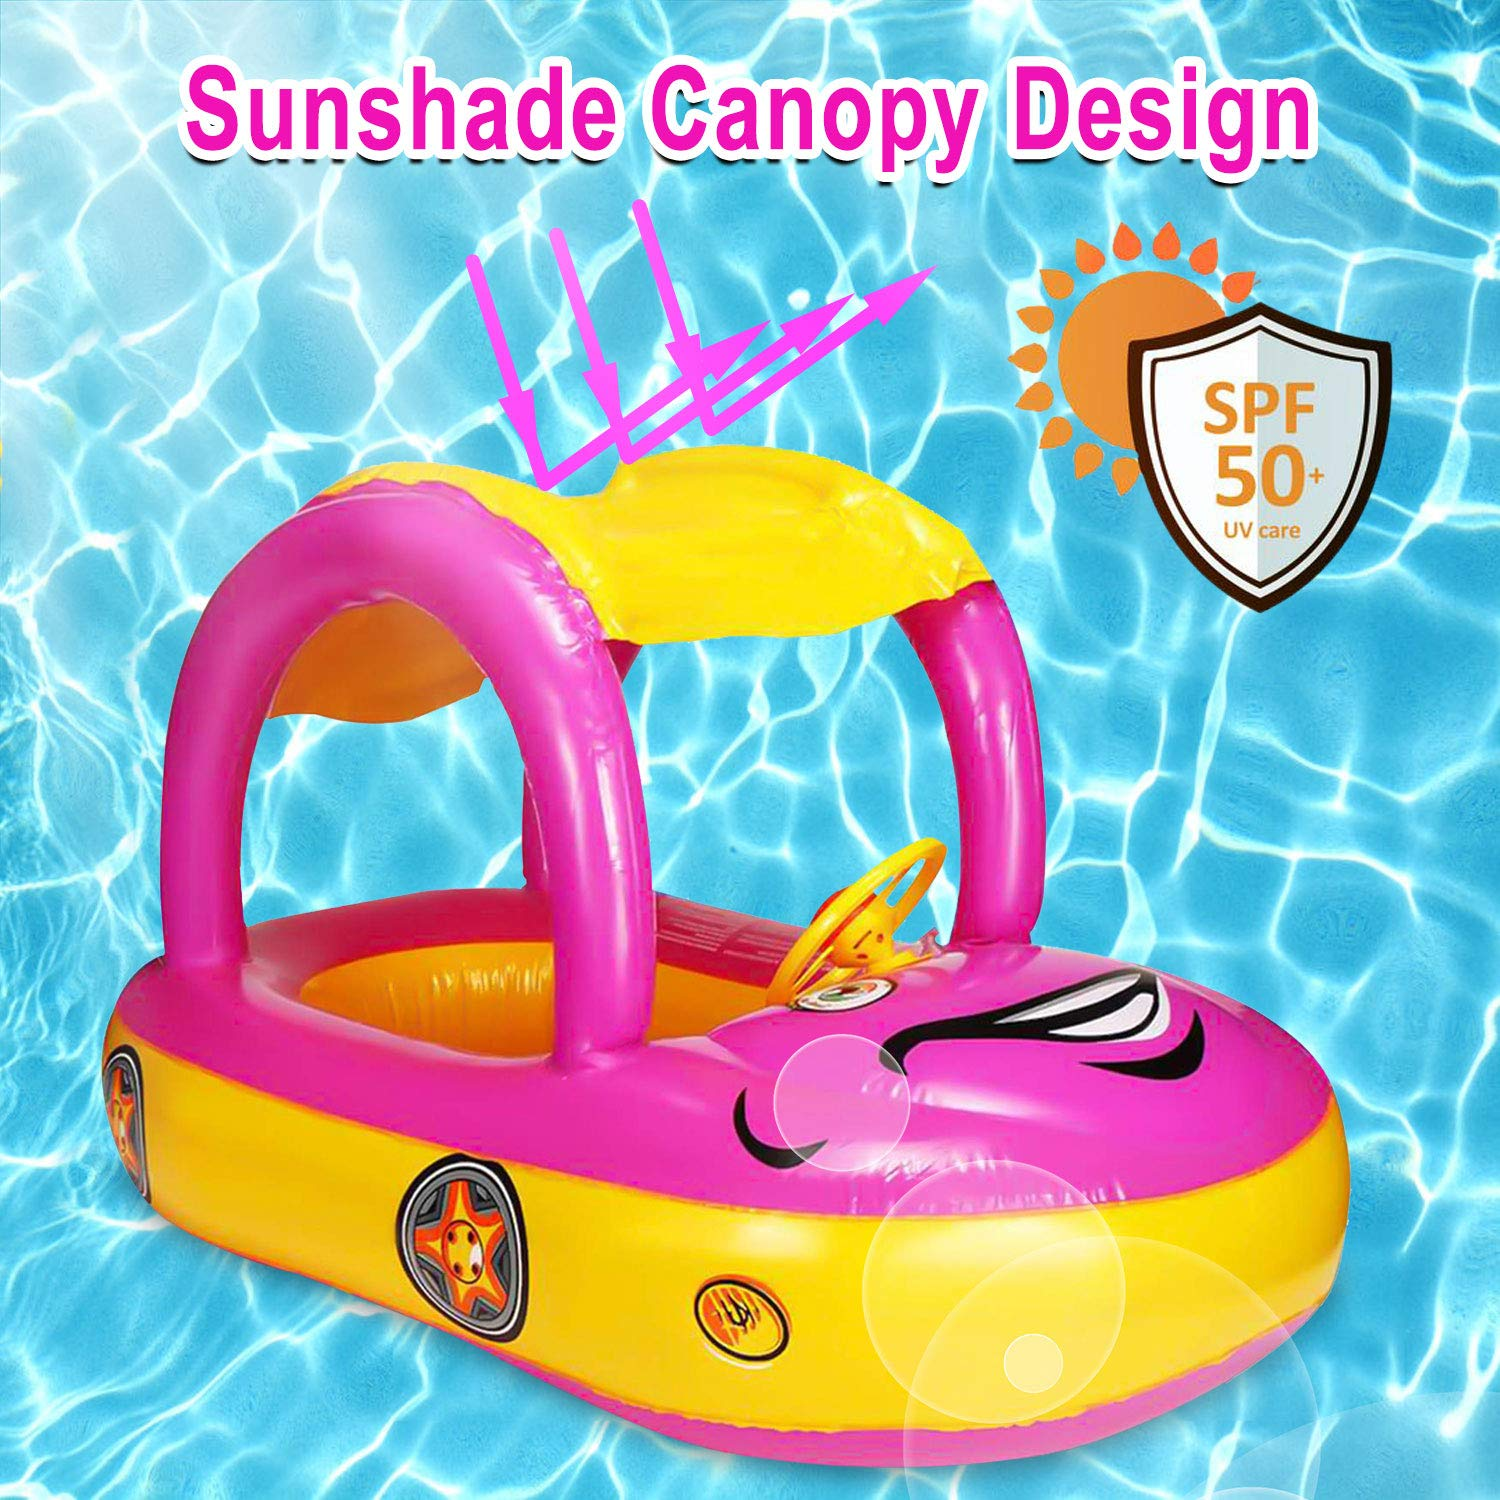 Baby Swim Float with Canopy Car Shaped Inflatable Swimming Ring Boat with Sunshade for Boys Girls Toddler Infant Float for Pool Floating Cartoon Boat Summer Outdoor Play Fit 3-36 Months, Maximum 44lb